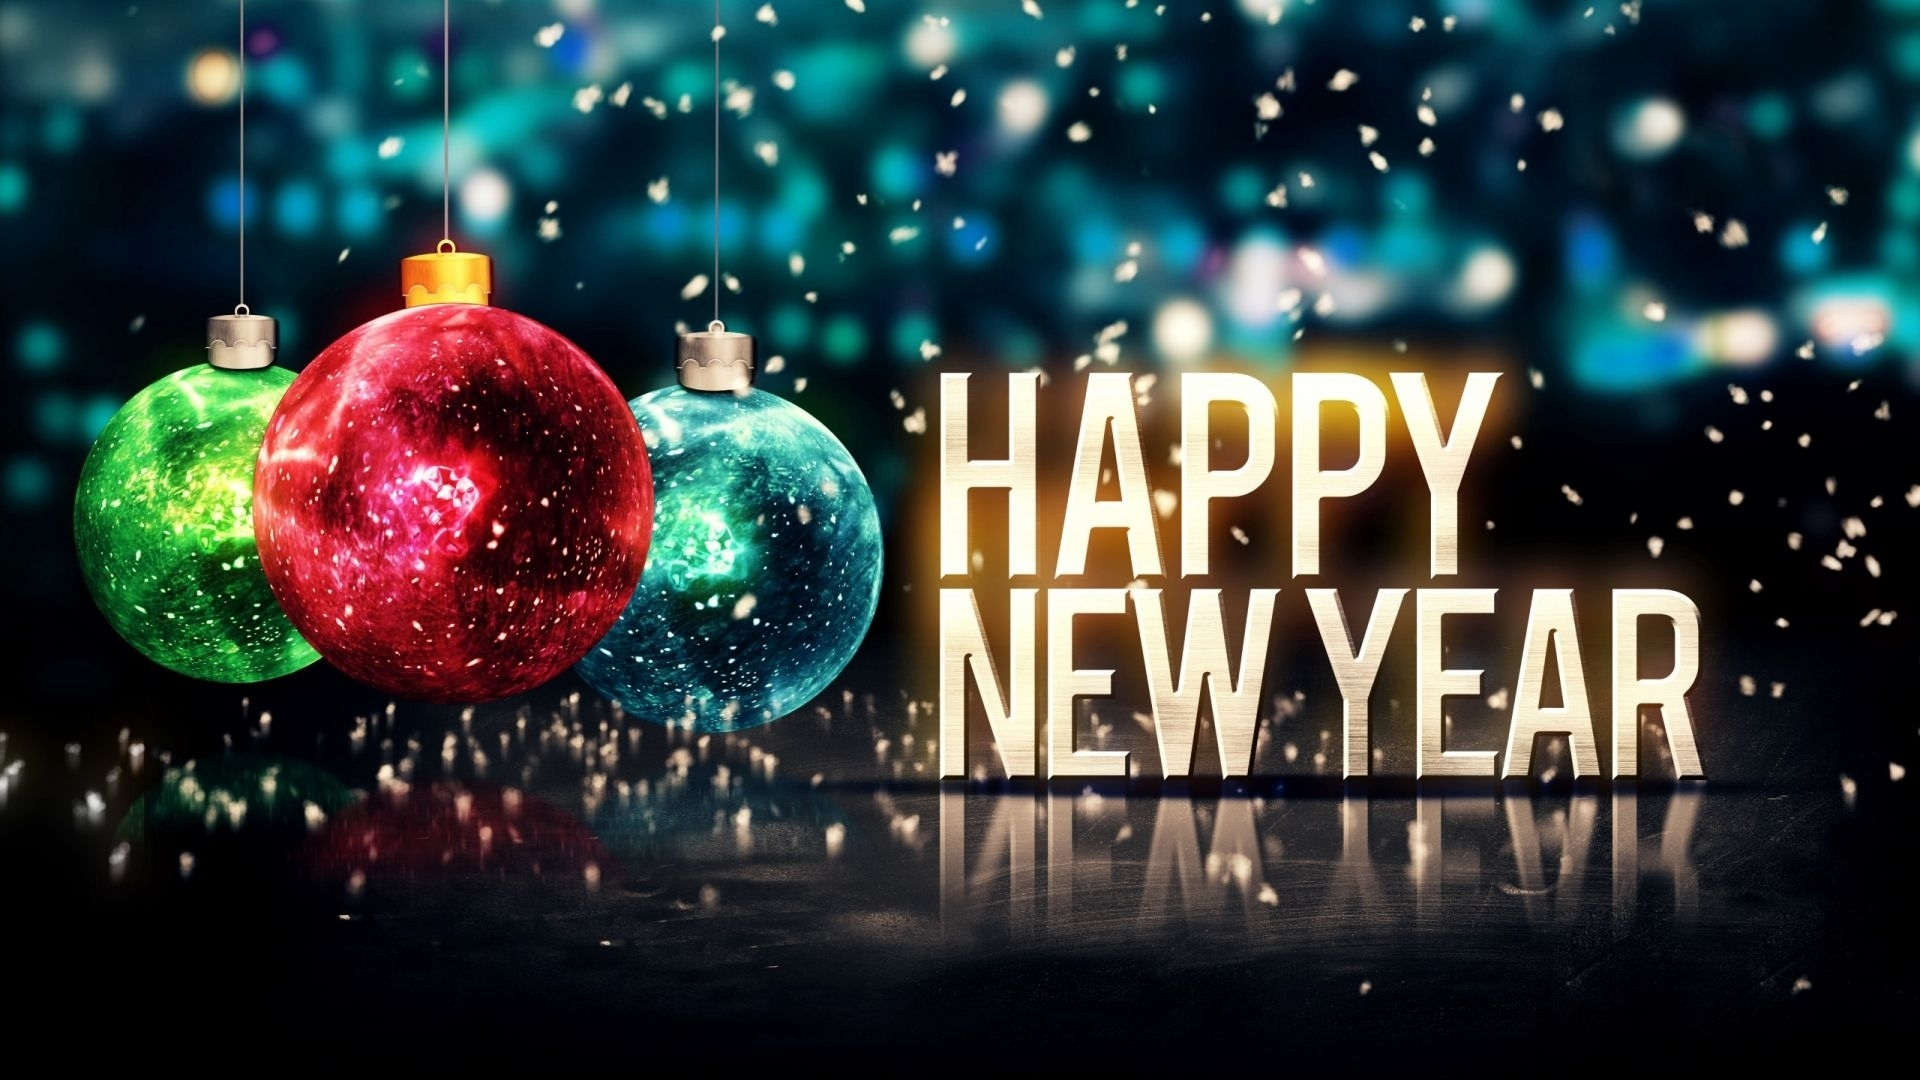 happy new year wallpaper | photography | pinterest | wallpaper and